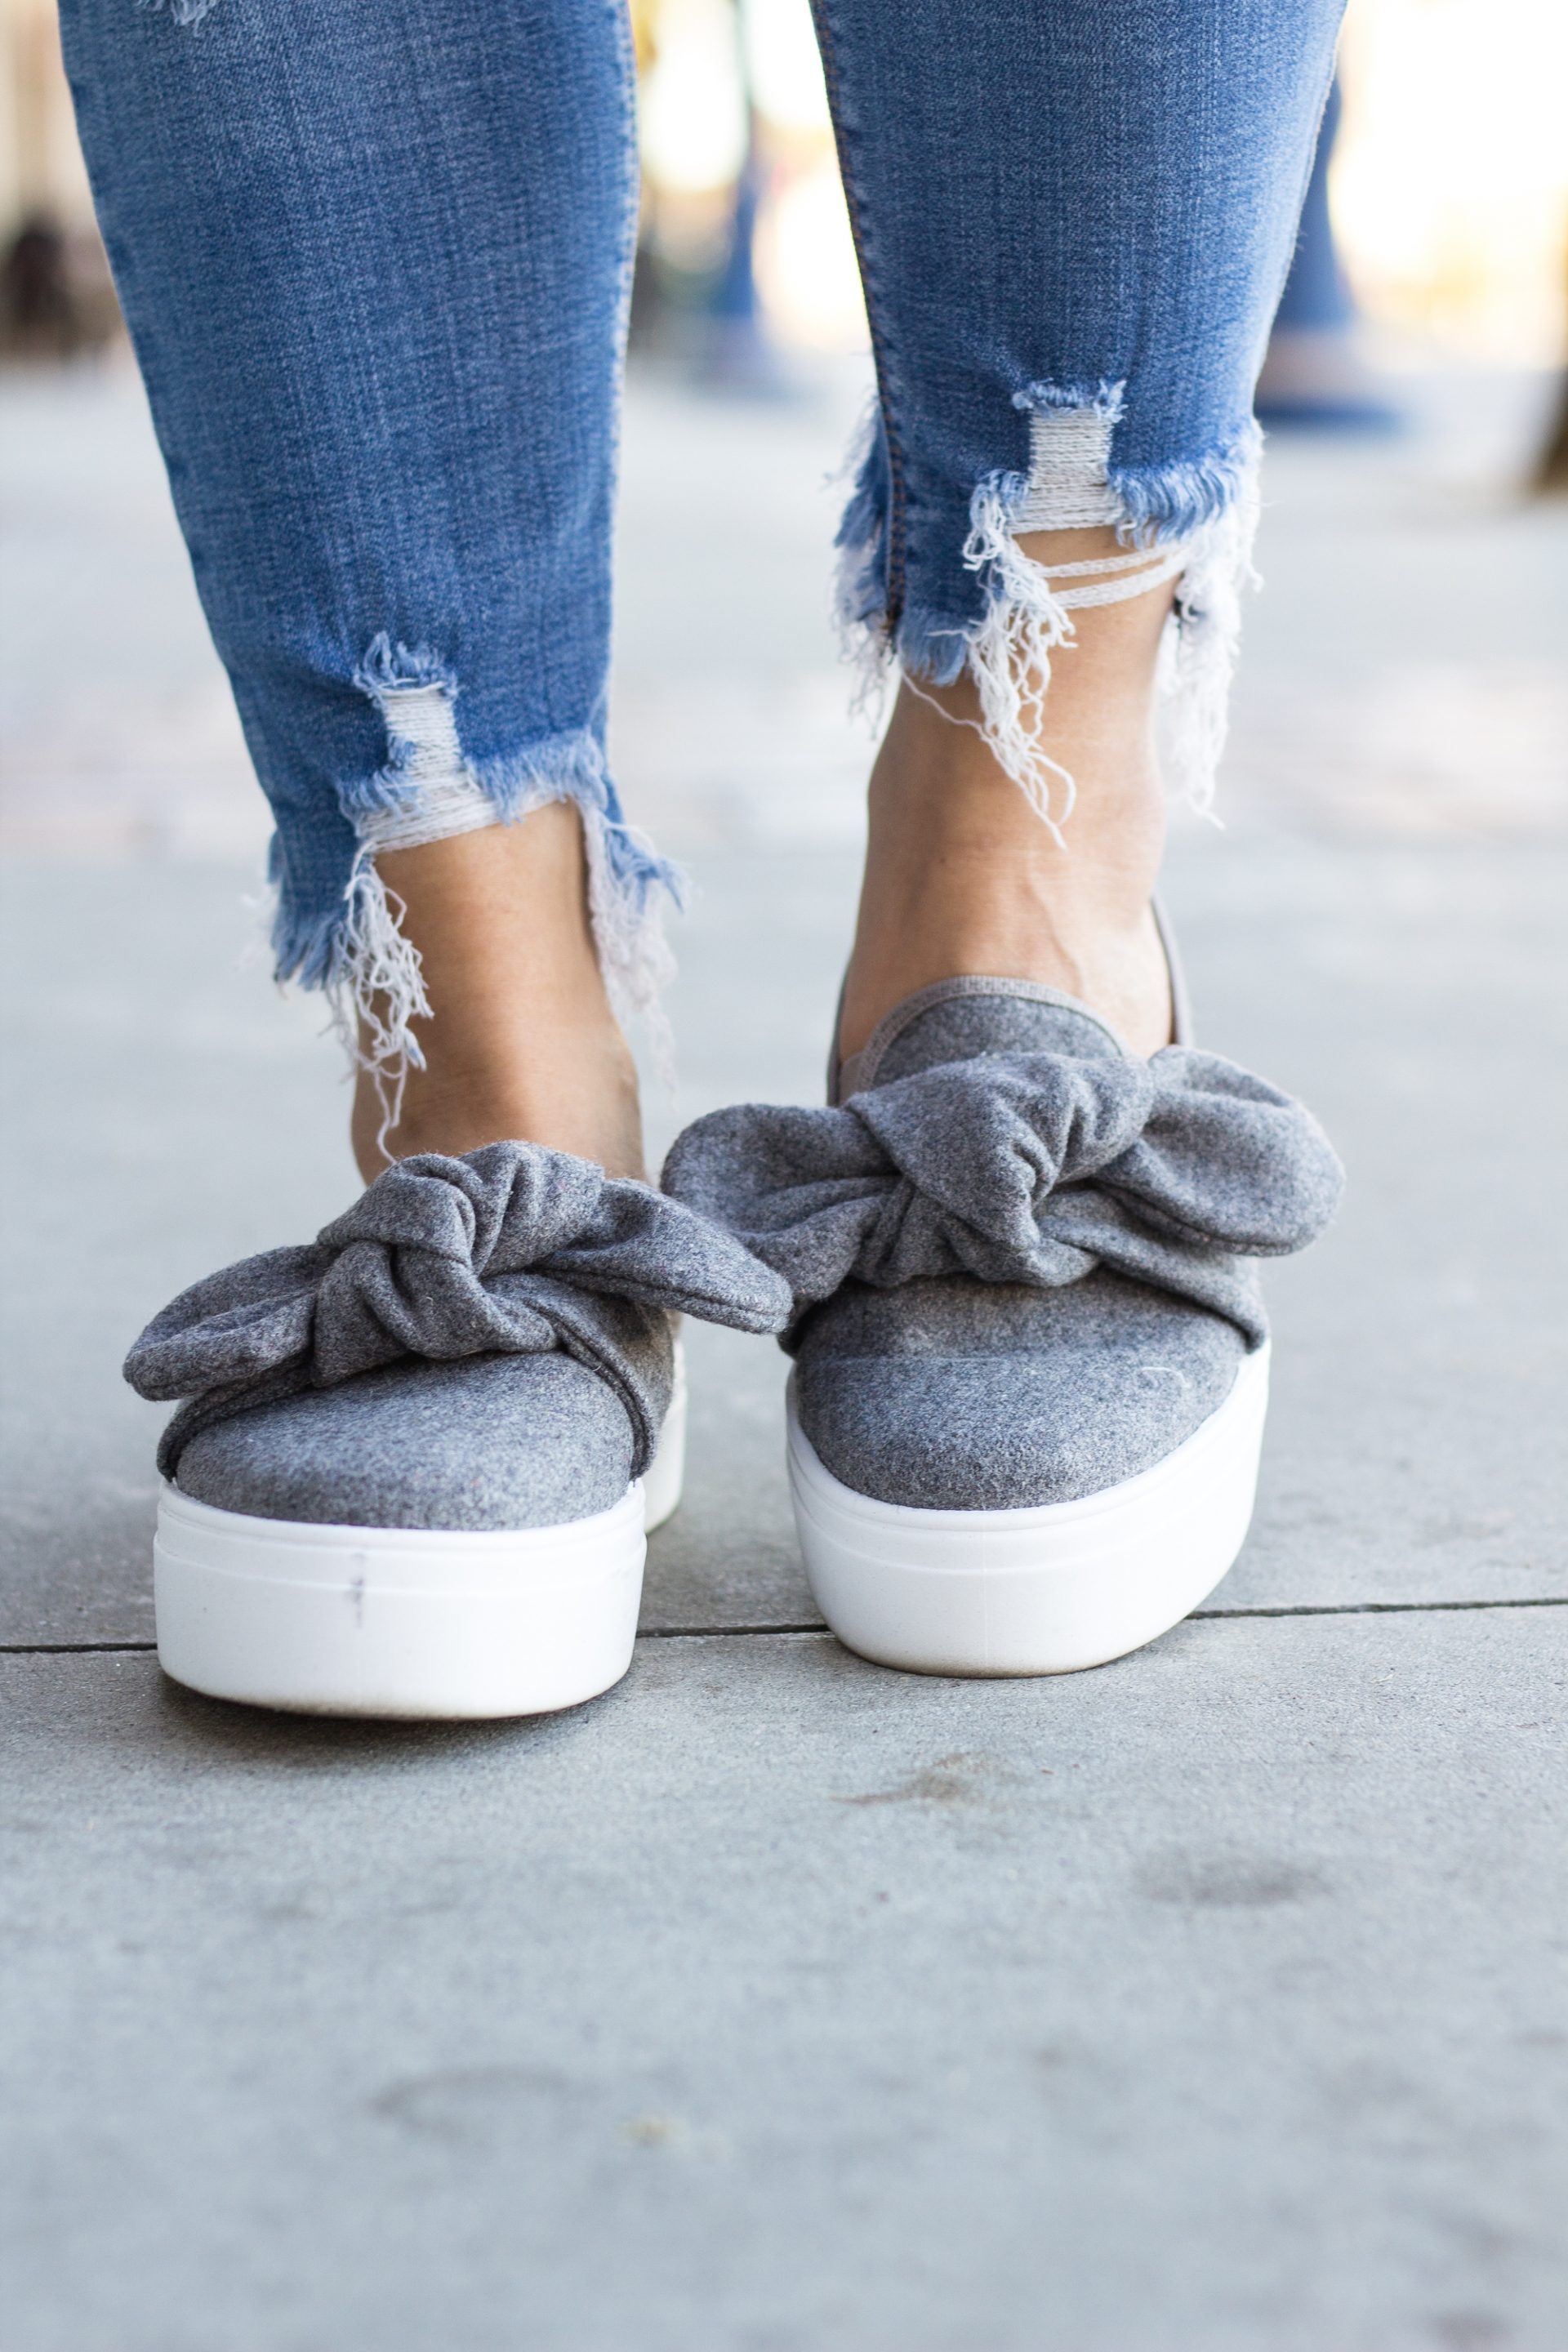 ASOS-Statement-Bow-Sneakers-As-Seen-On-Me